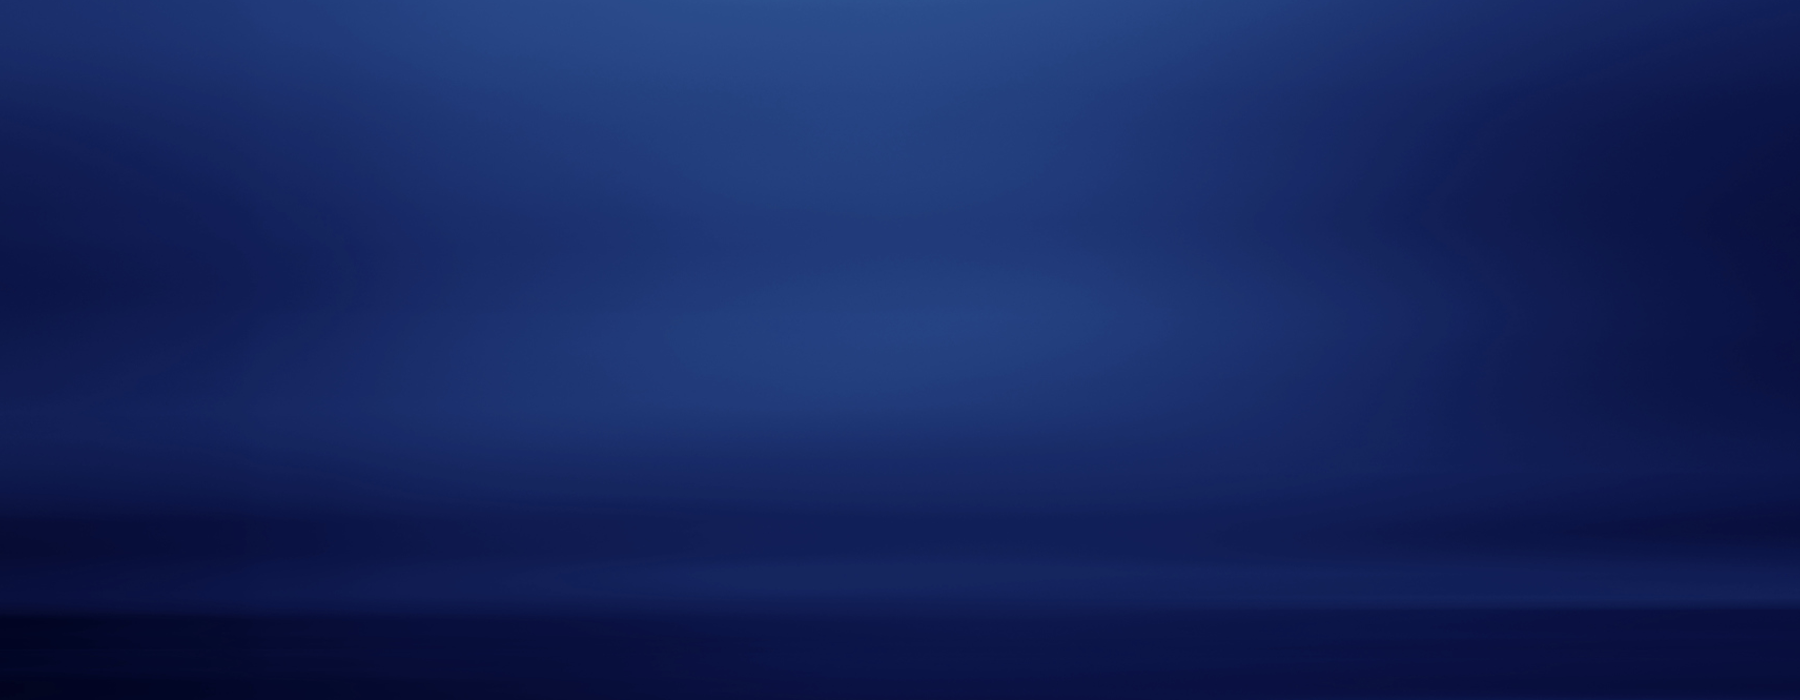 banner blue background inacomp technology services